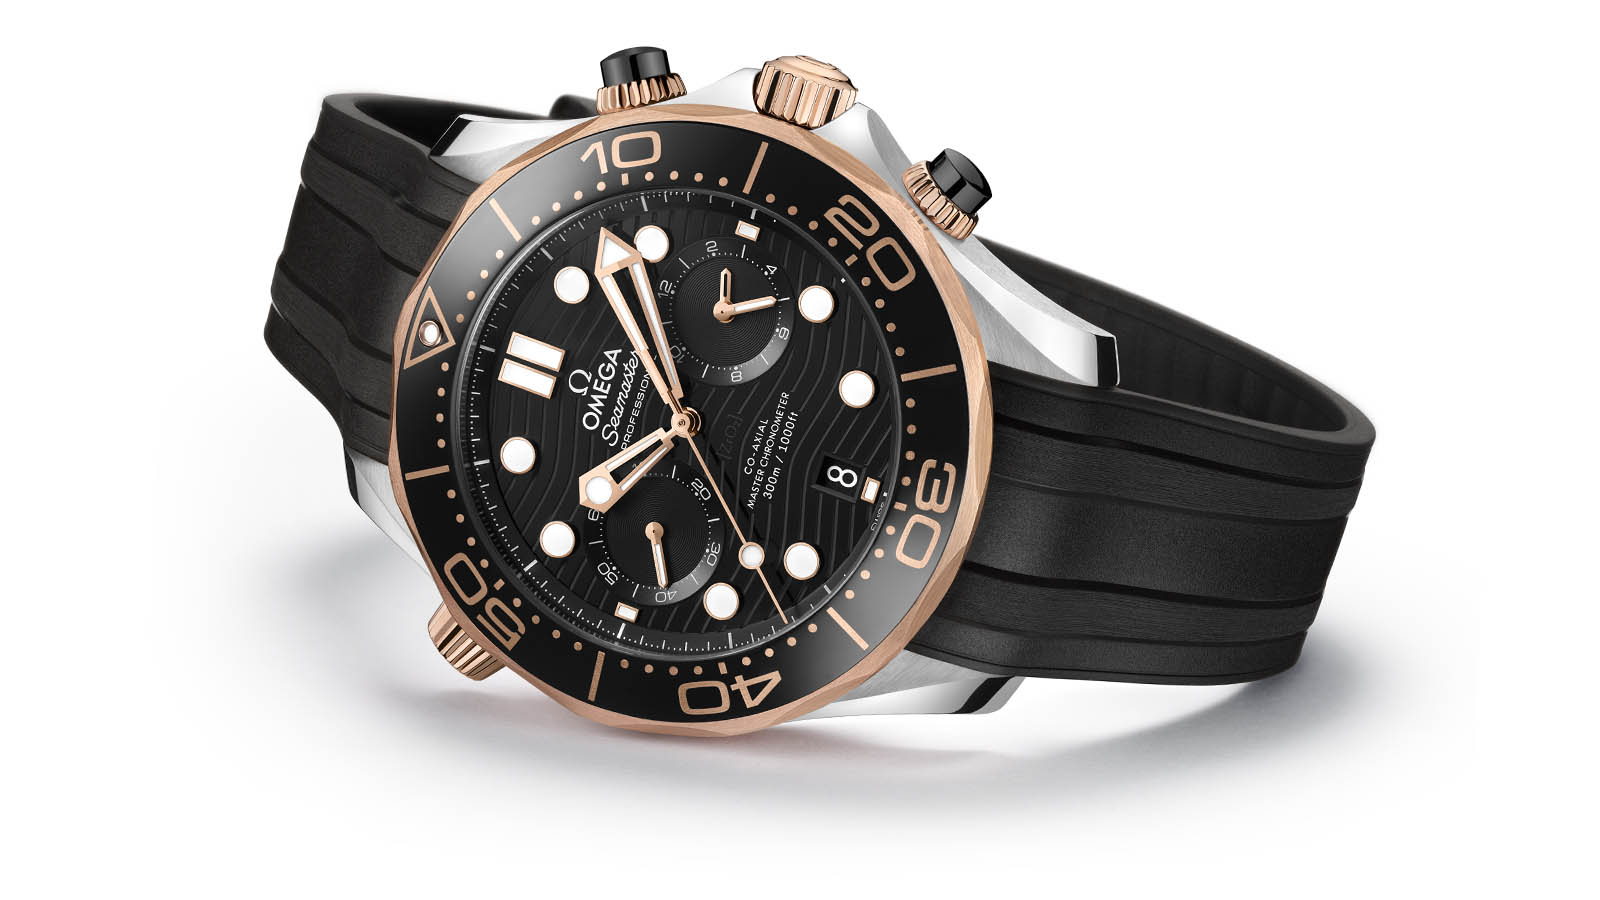 The Seamaster Diver 300M Chronograph Collection